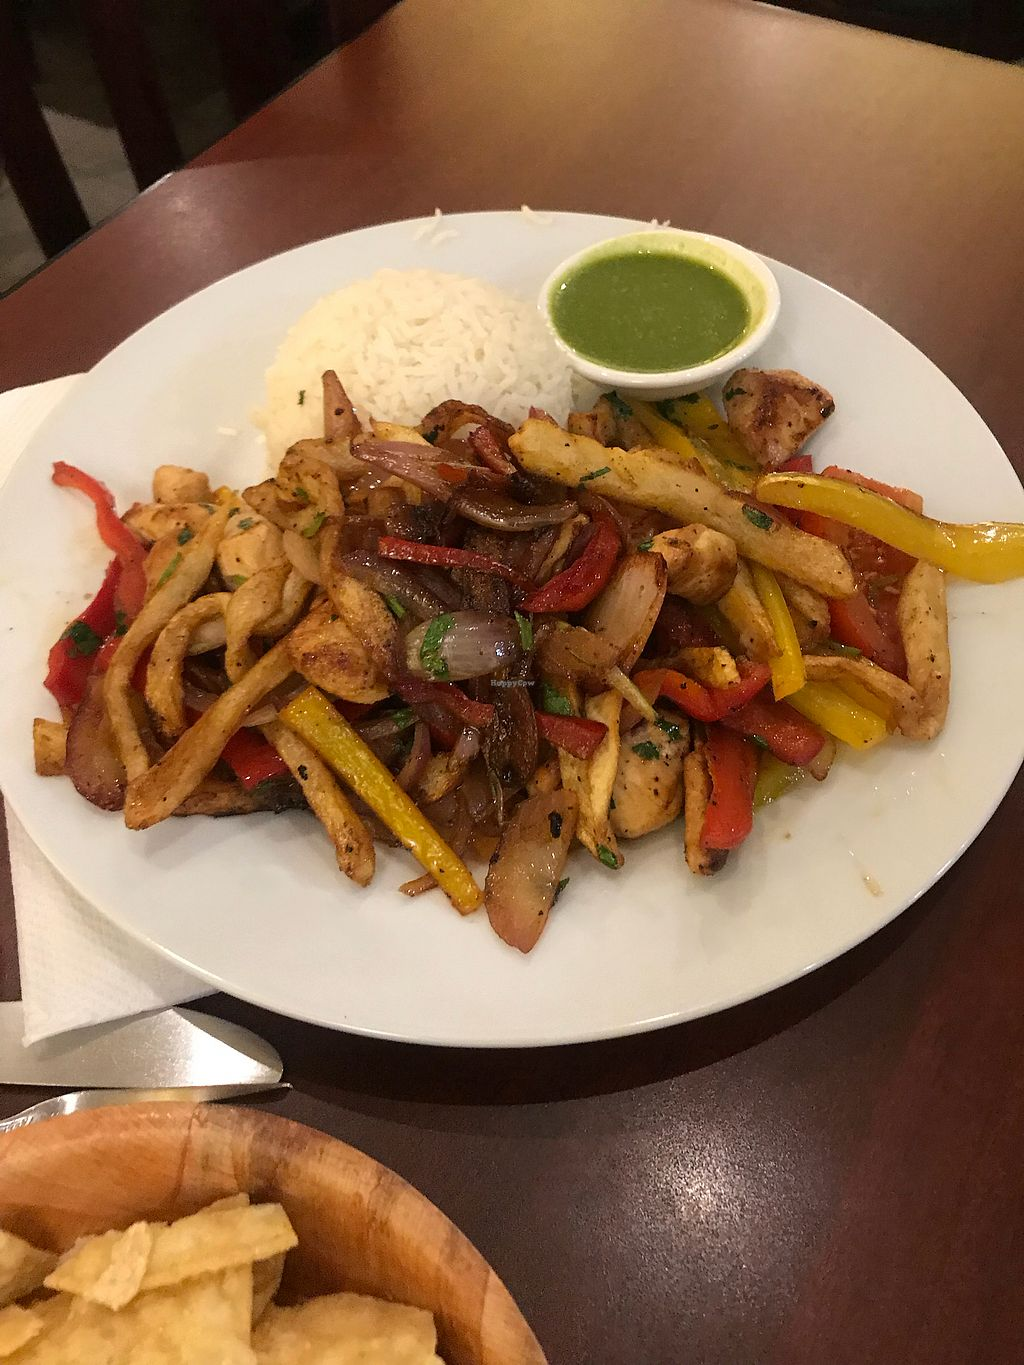 """Photo of un solo sol  by <a href=""""/members/profile/Vegan_Ness"""">Vegan_Ness</a> <br/>Tofu Saltado (fries w/ bell peppers and onions) <br/> October 7, 2017  - <a href='/contact/abuse/image/55390/312563'>Report</a>"""